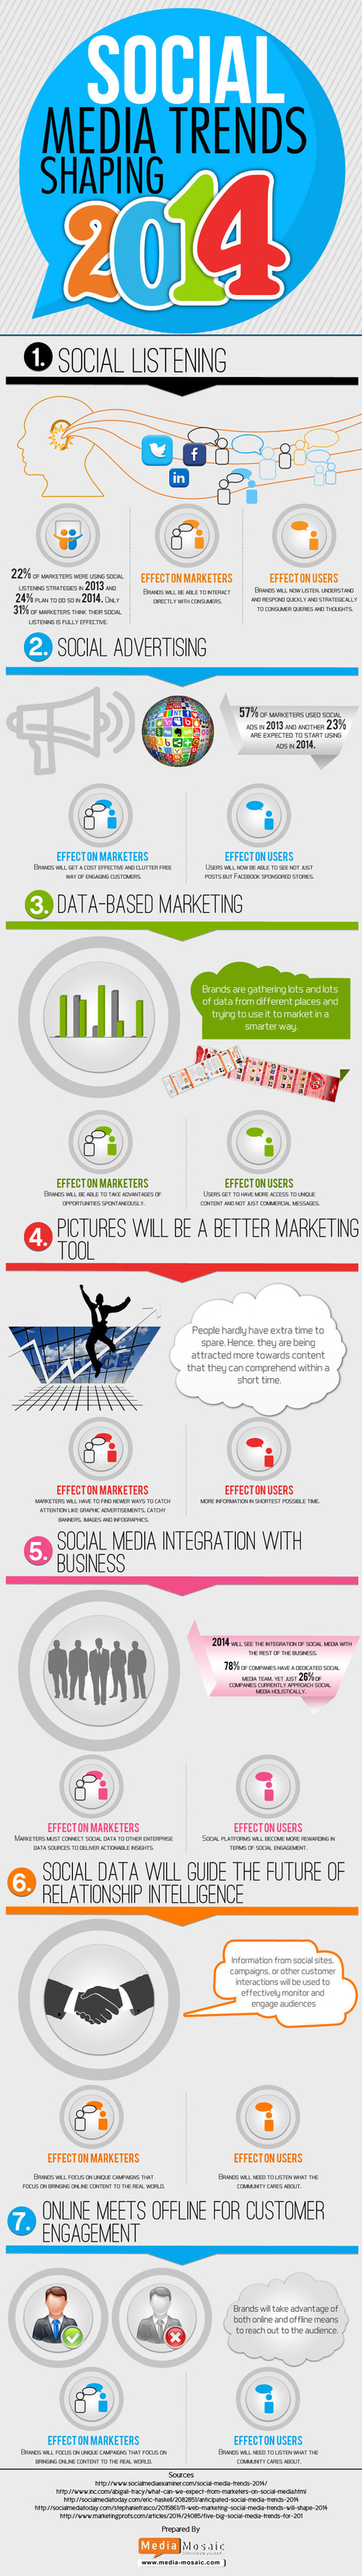 7 Social Media Trends That Are Shaping 2014 [INFOGRAPHIC] | Strategies for Managing Your Business | Scoop.it